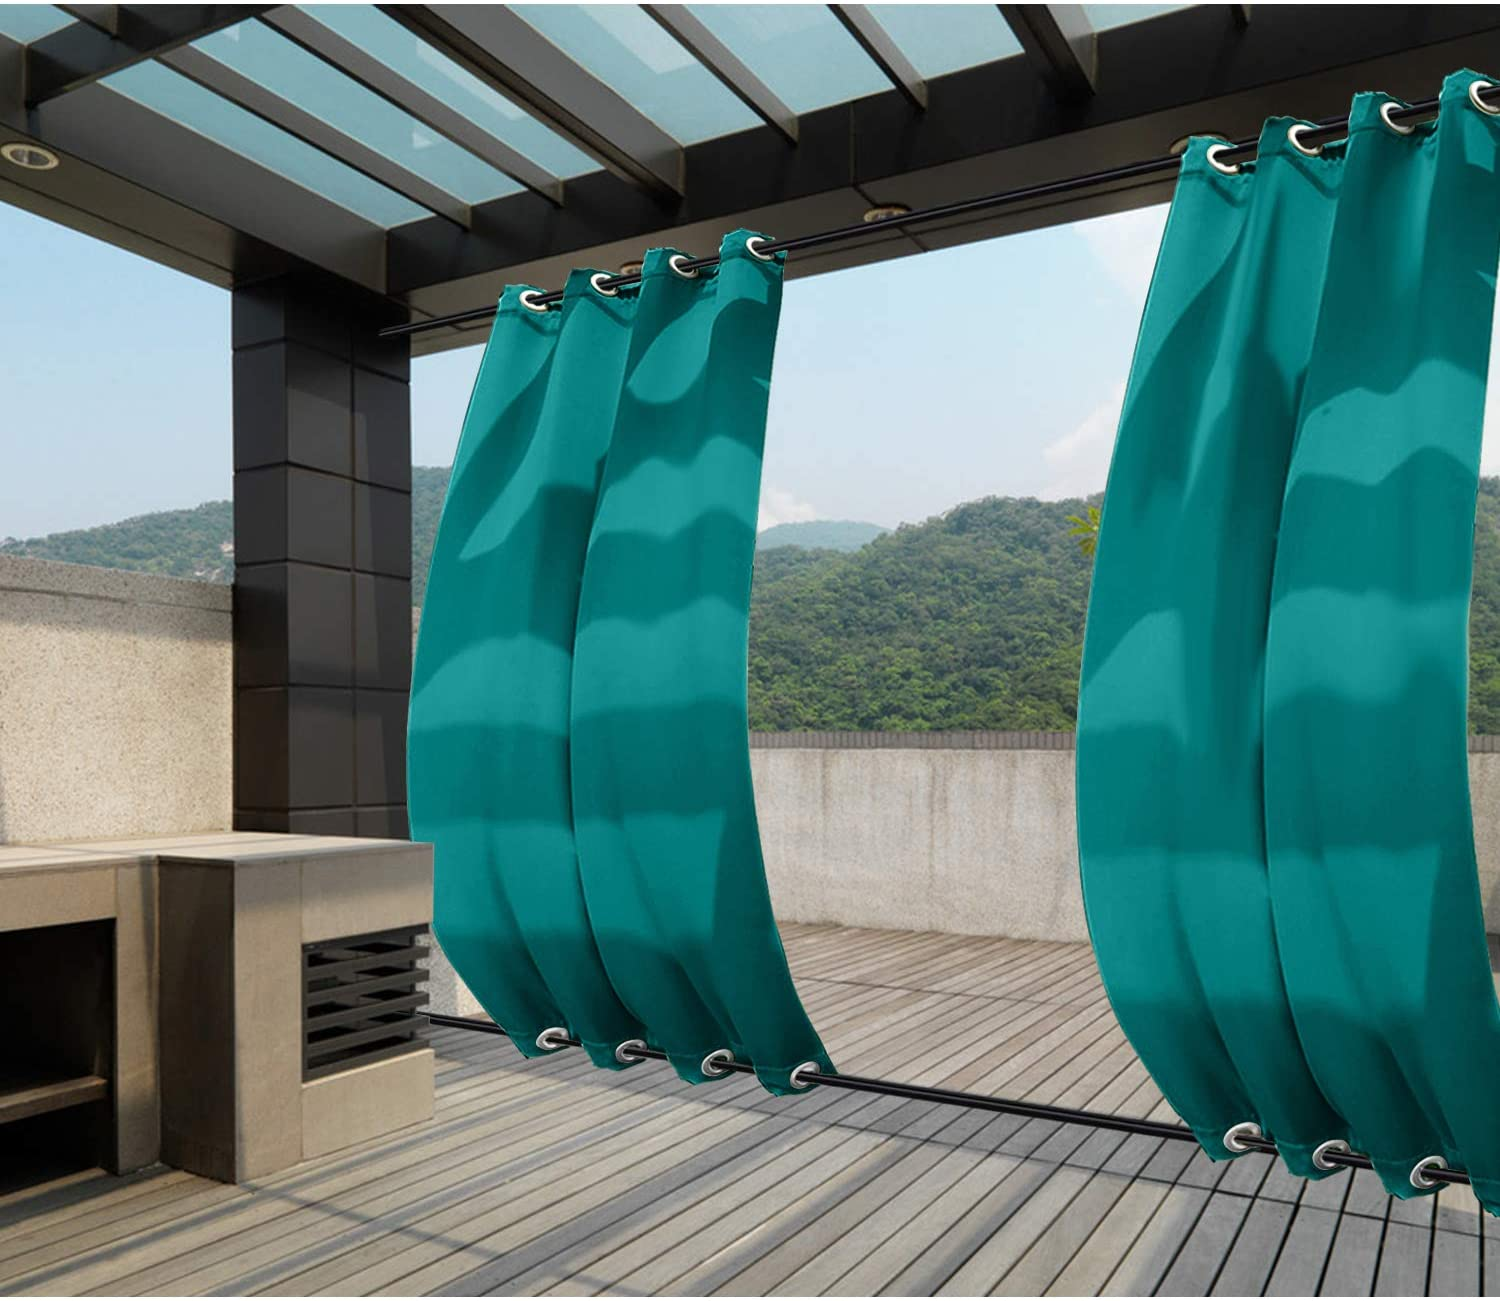 Macochico Outdoor Windproof Curtains Thermal Insulated Noise Reducing Lightproof Blackout Draperies Grommet at Top and Bottom for Patio Porch Gazebo Garden Turquoise 52W x 96L (1 Panel)